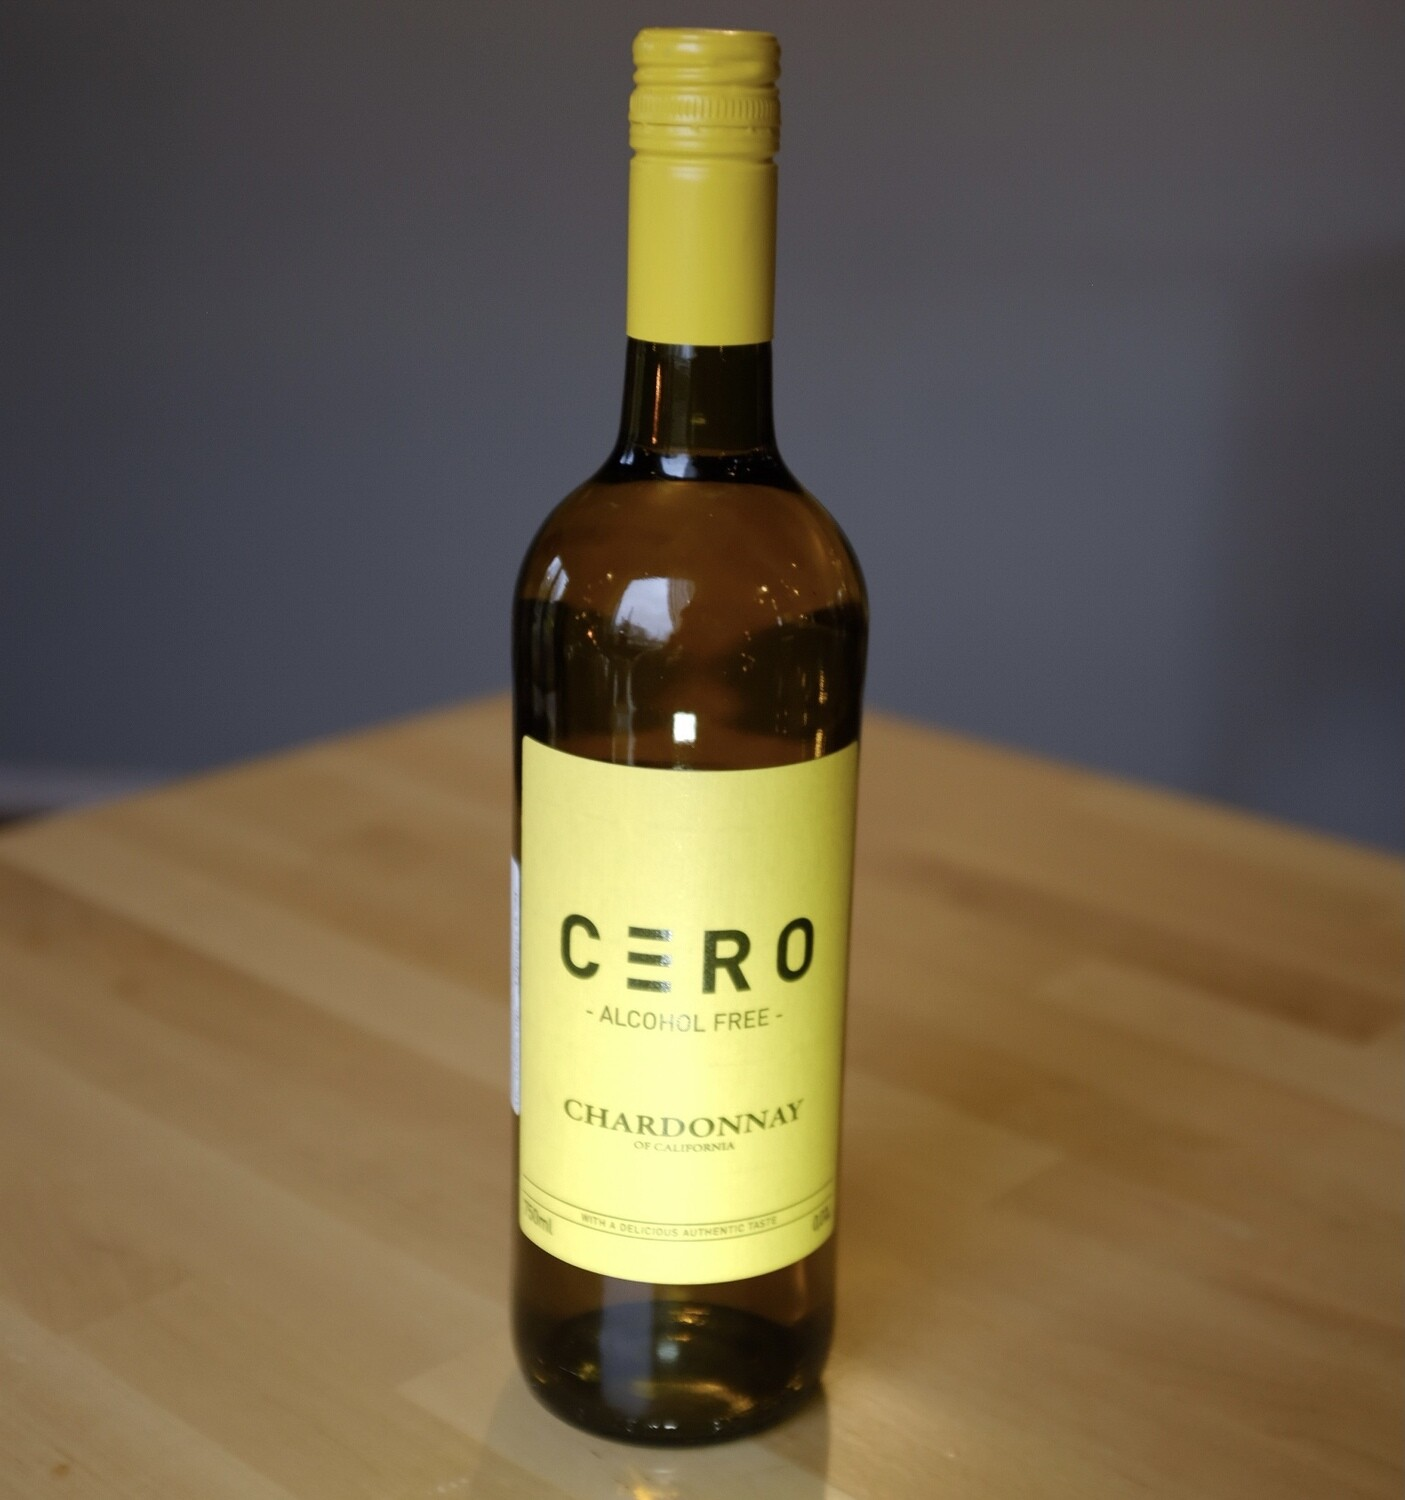 CERO. CHARDONNAY OF CALIFORNIA. ALCOHOL FREE 750ml